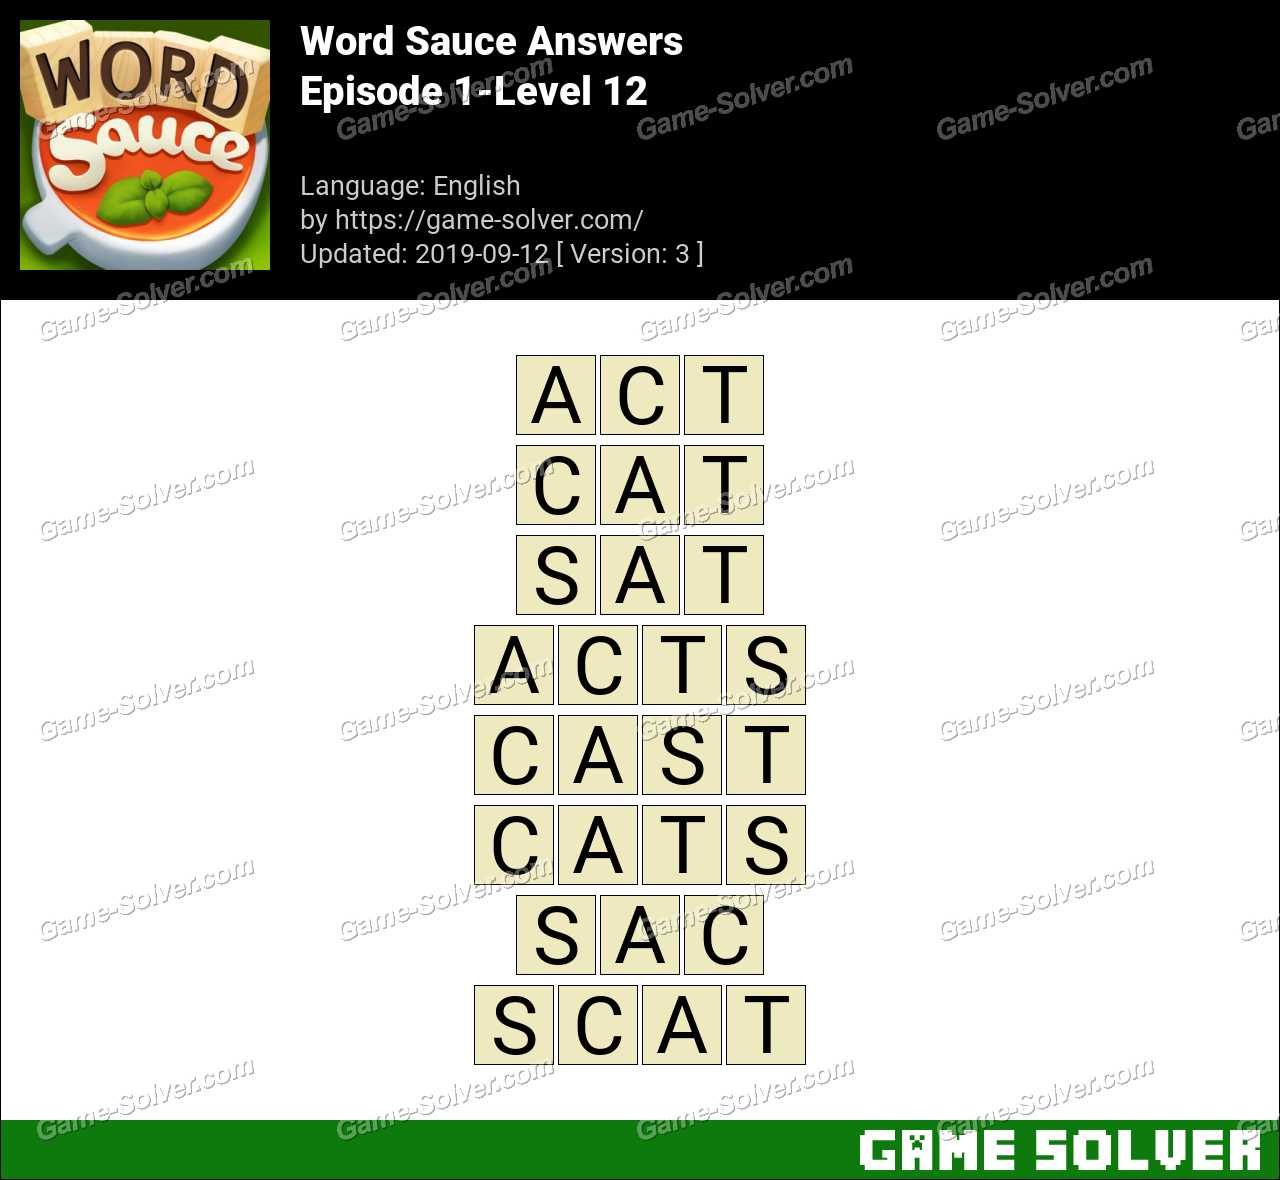 Word Sauce Episode 1-Level 12 Answers